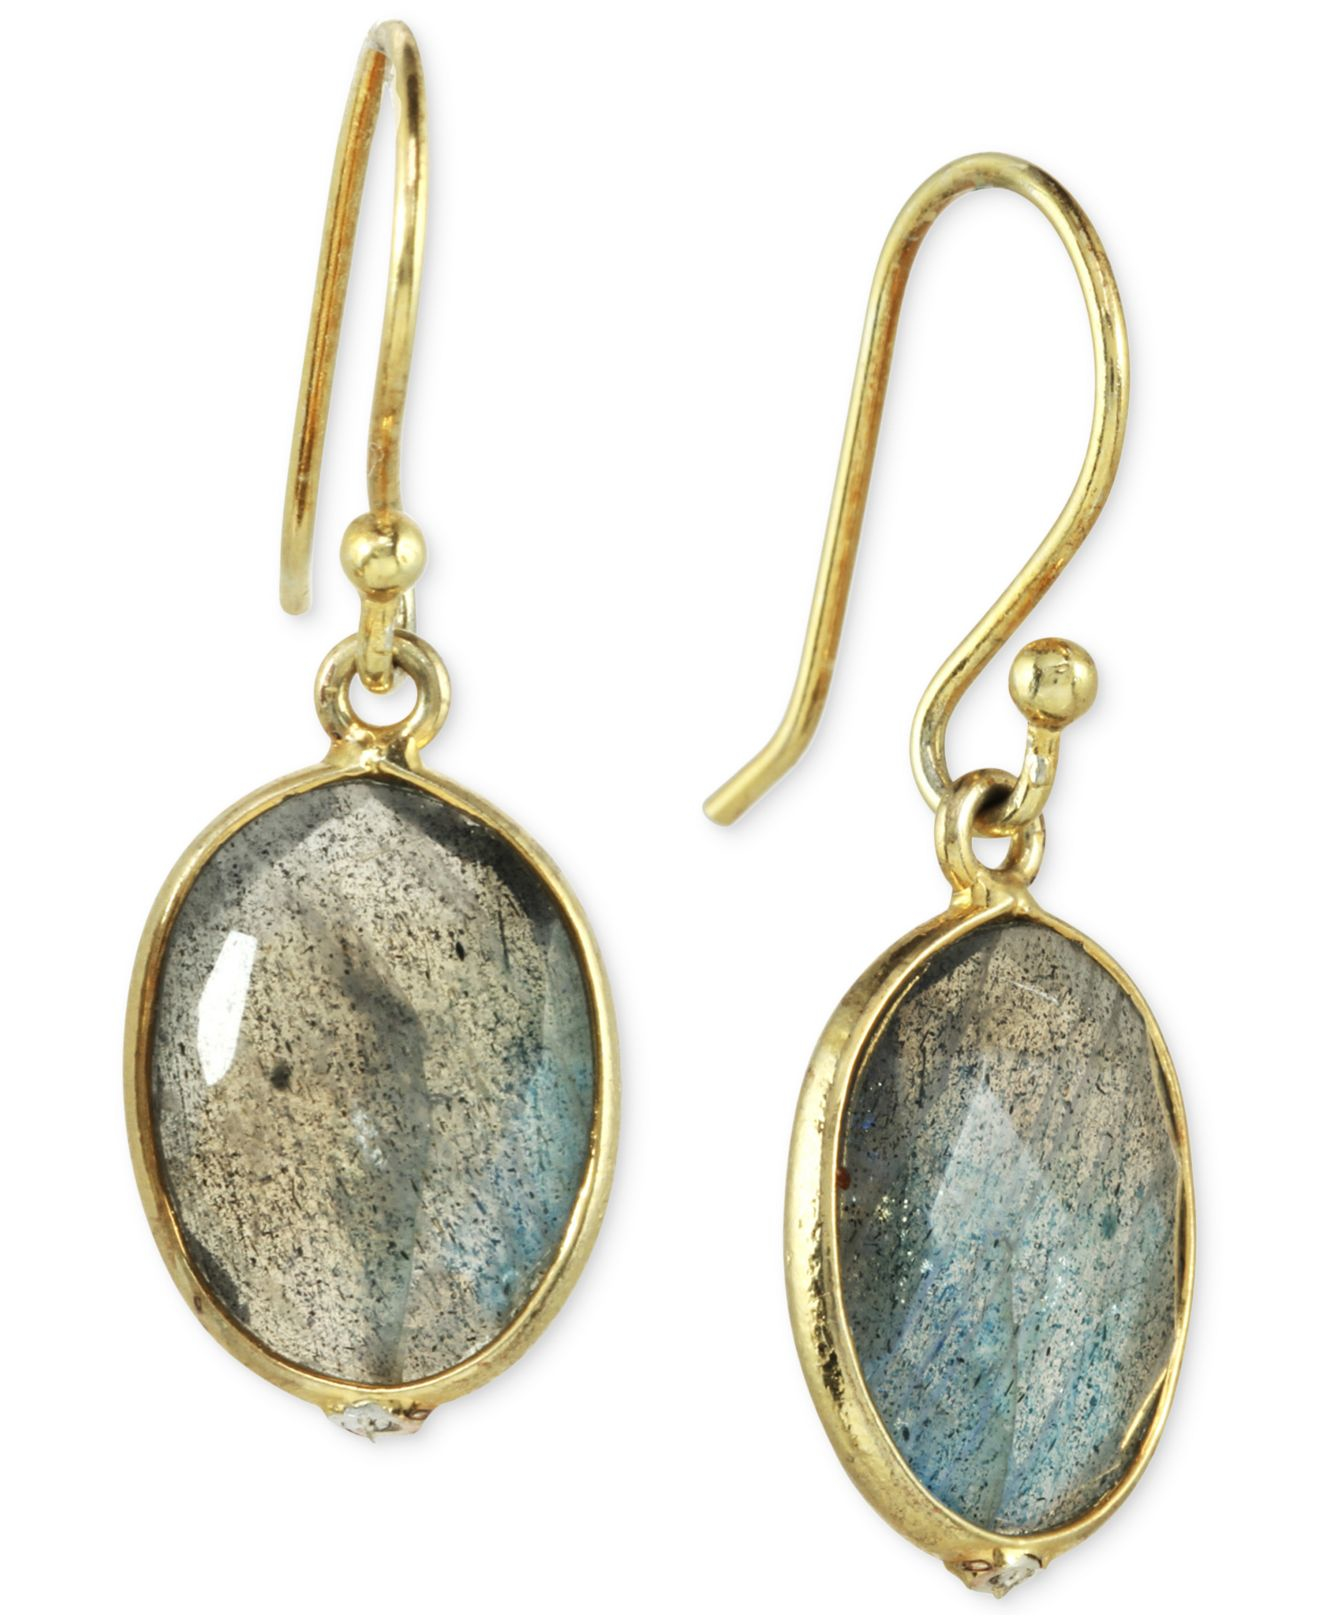 macys jewelry sale macy s labradorite drop earrings 10 ct t w in 14k gold 966